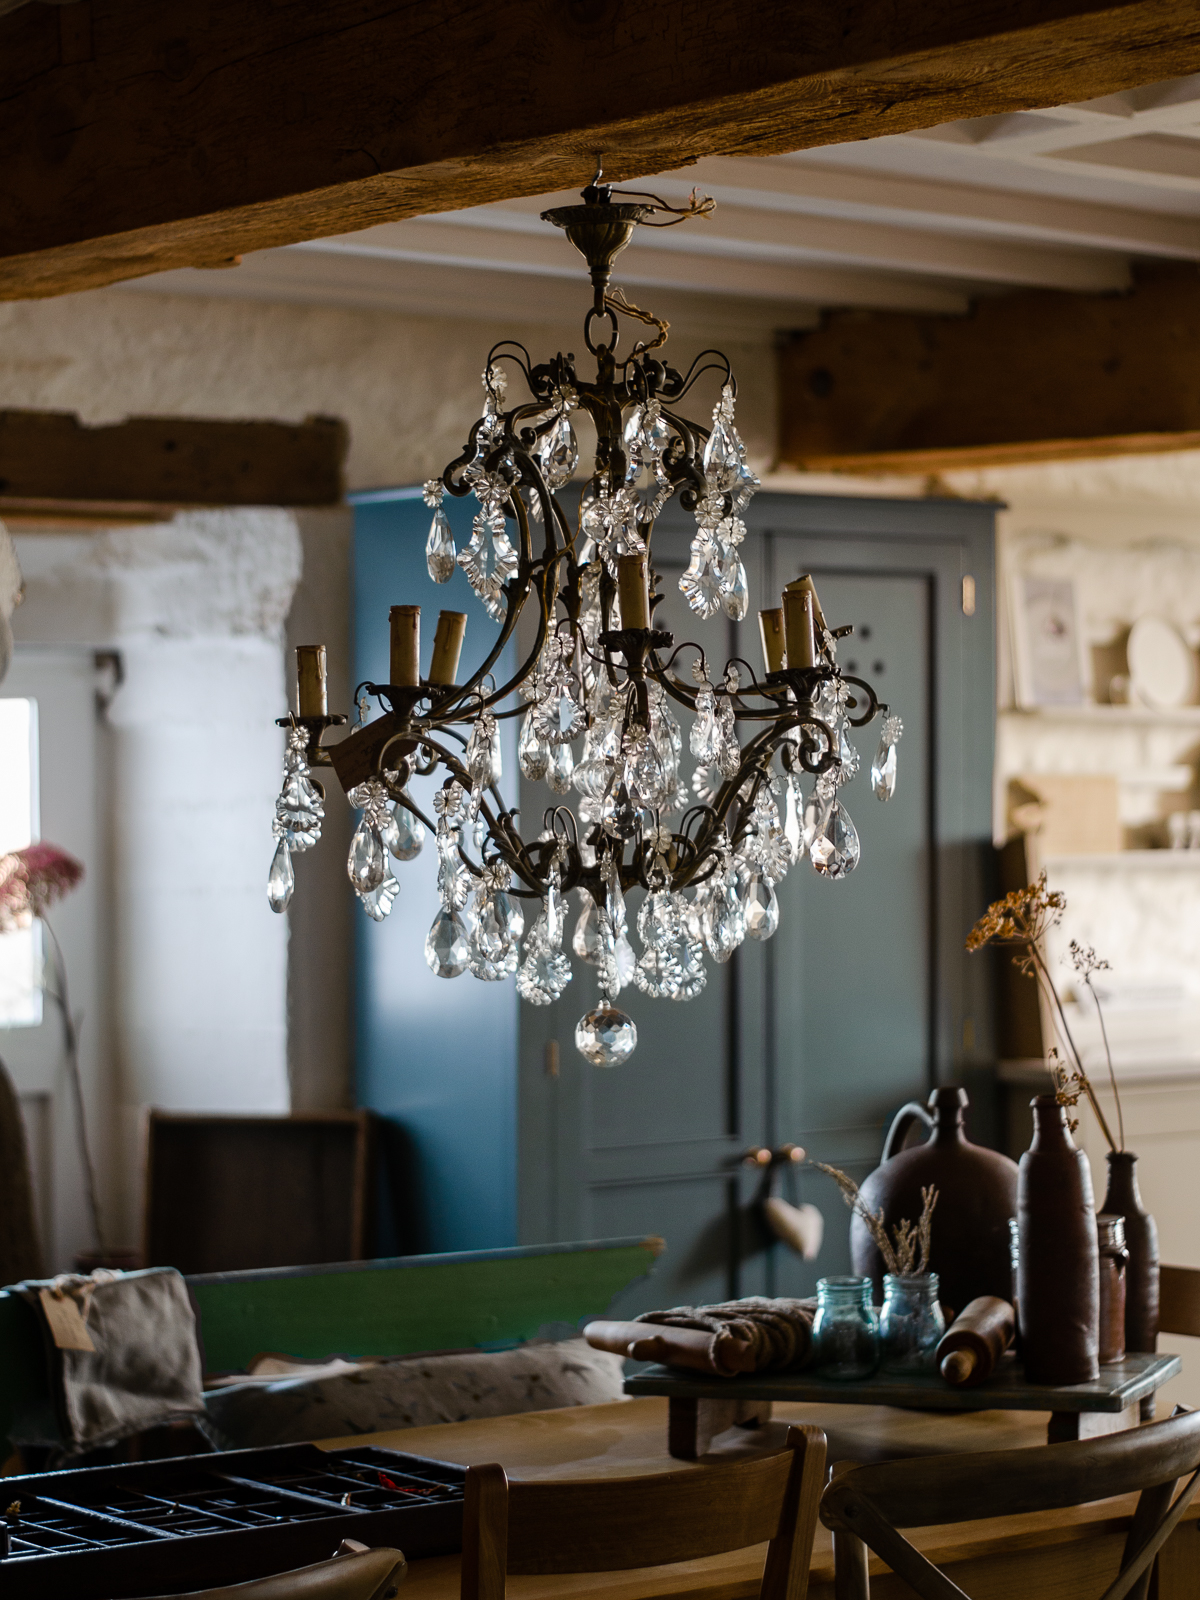 A hanging chandelier in the Shaker Showroom.